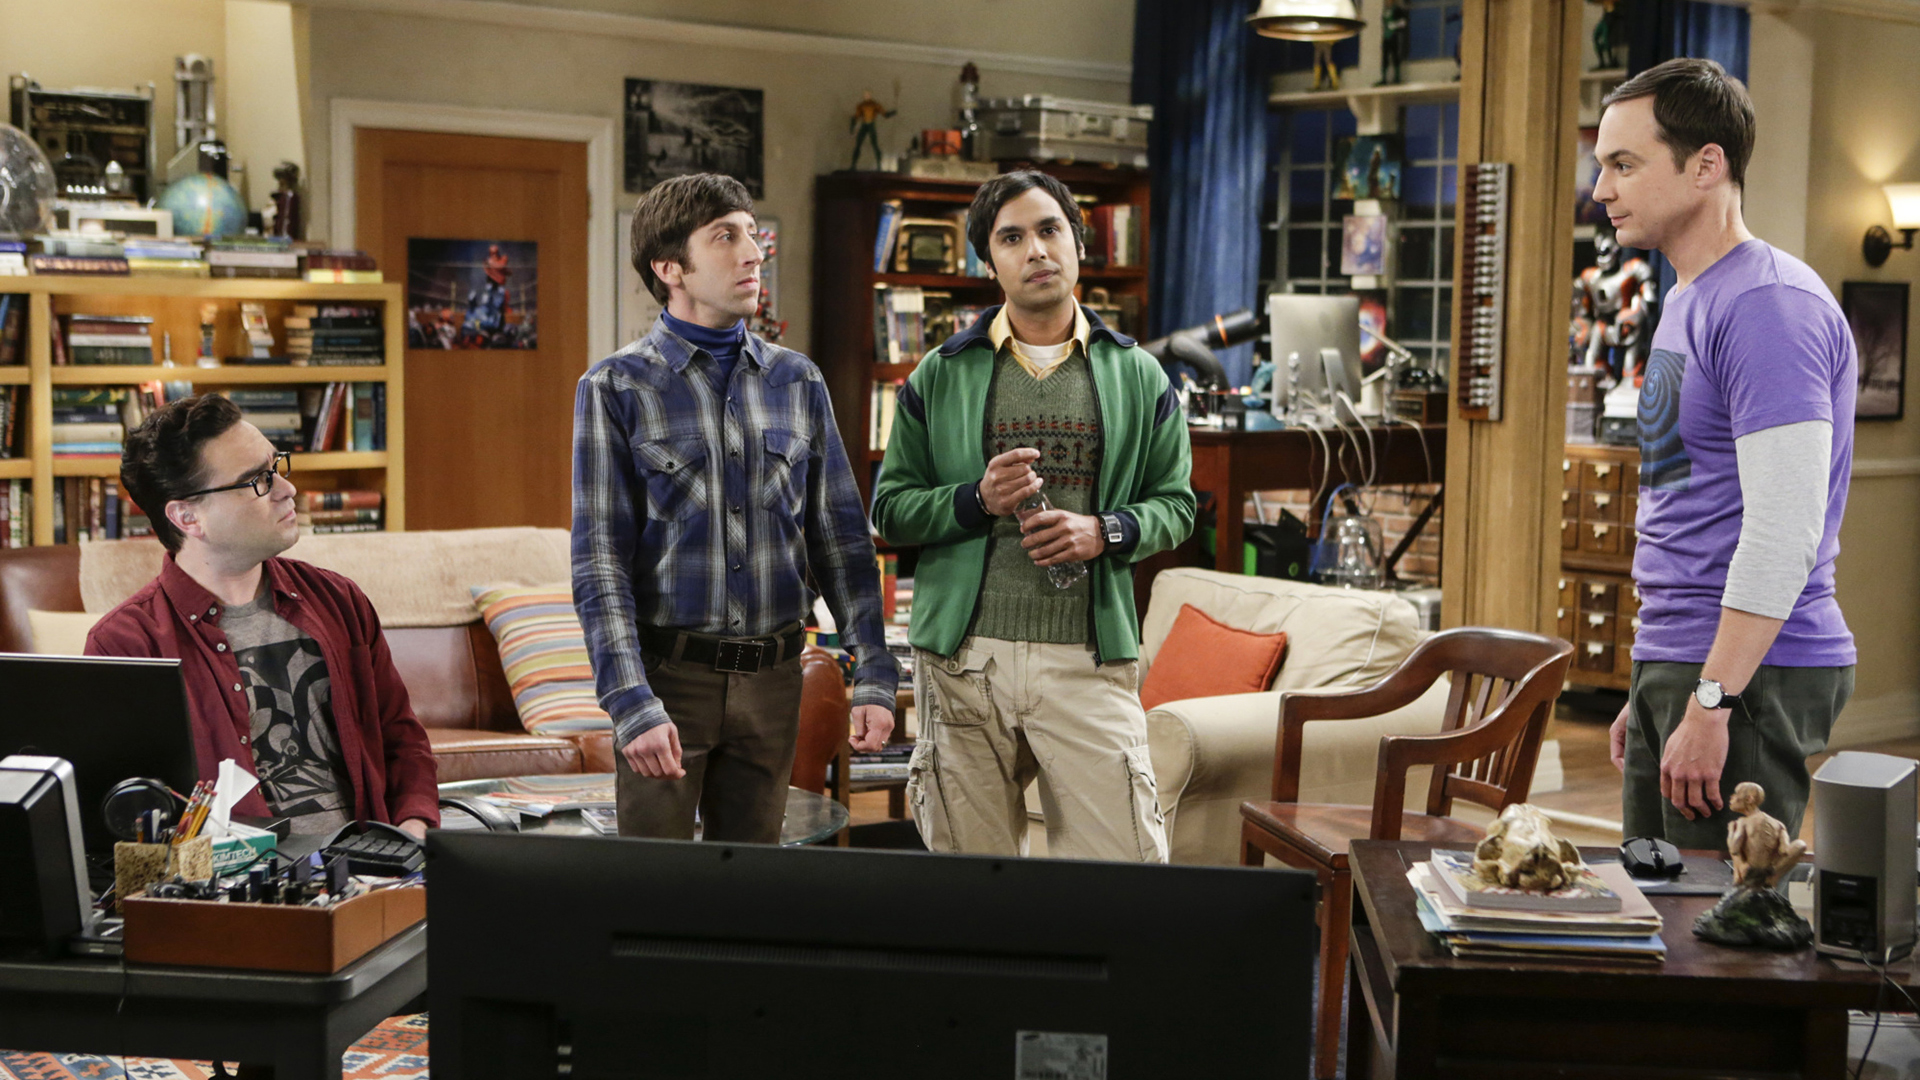 Leonard, Howard, Raj, and Sheldon discuss their current predicament.